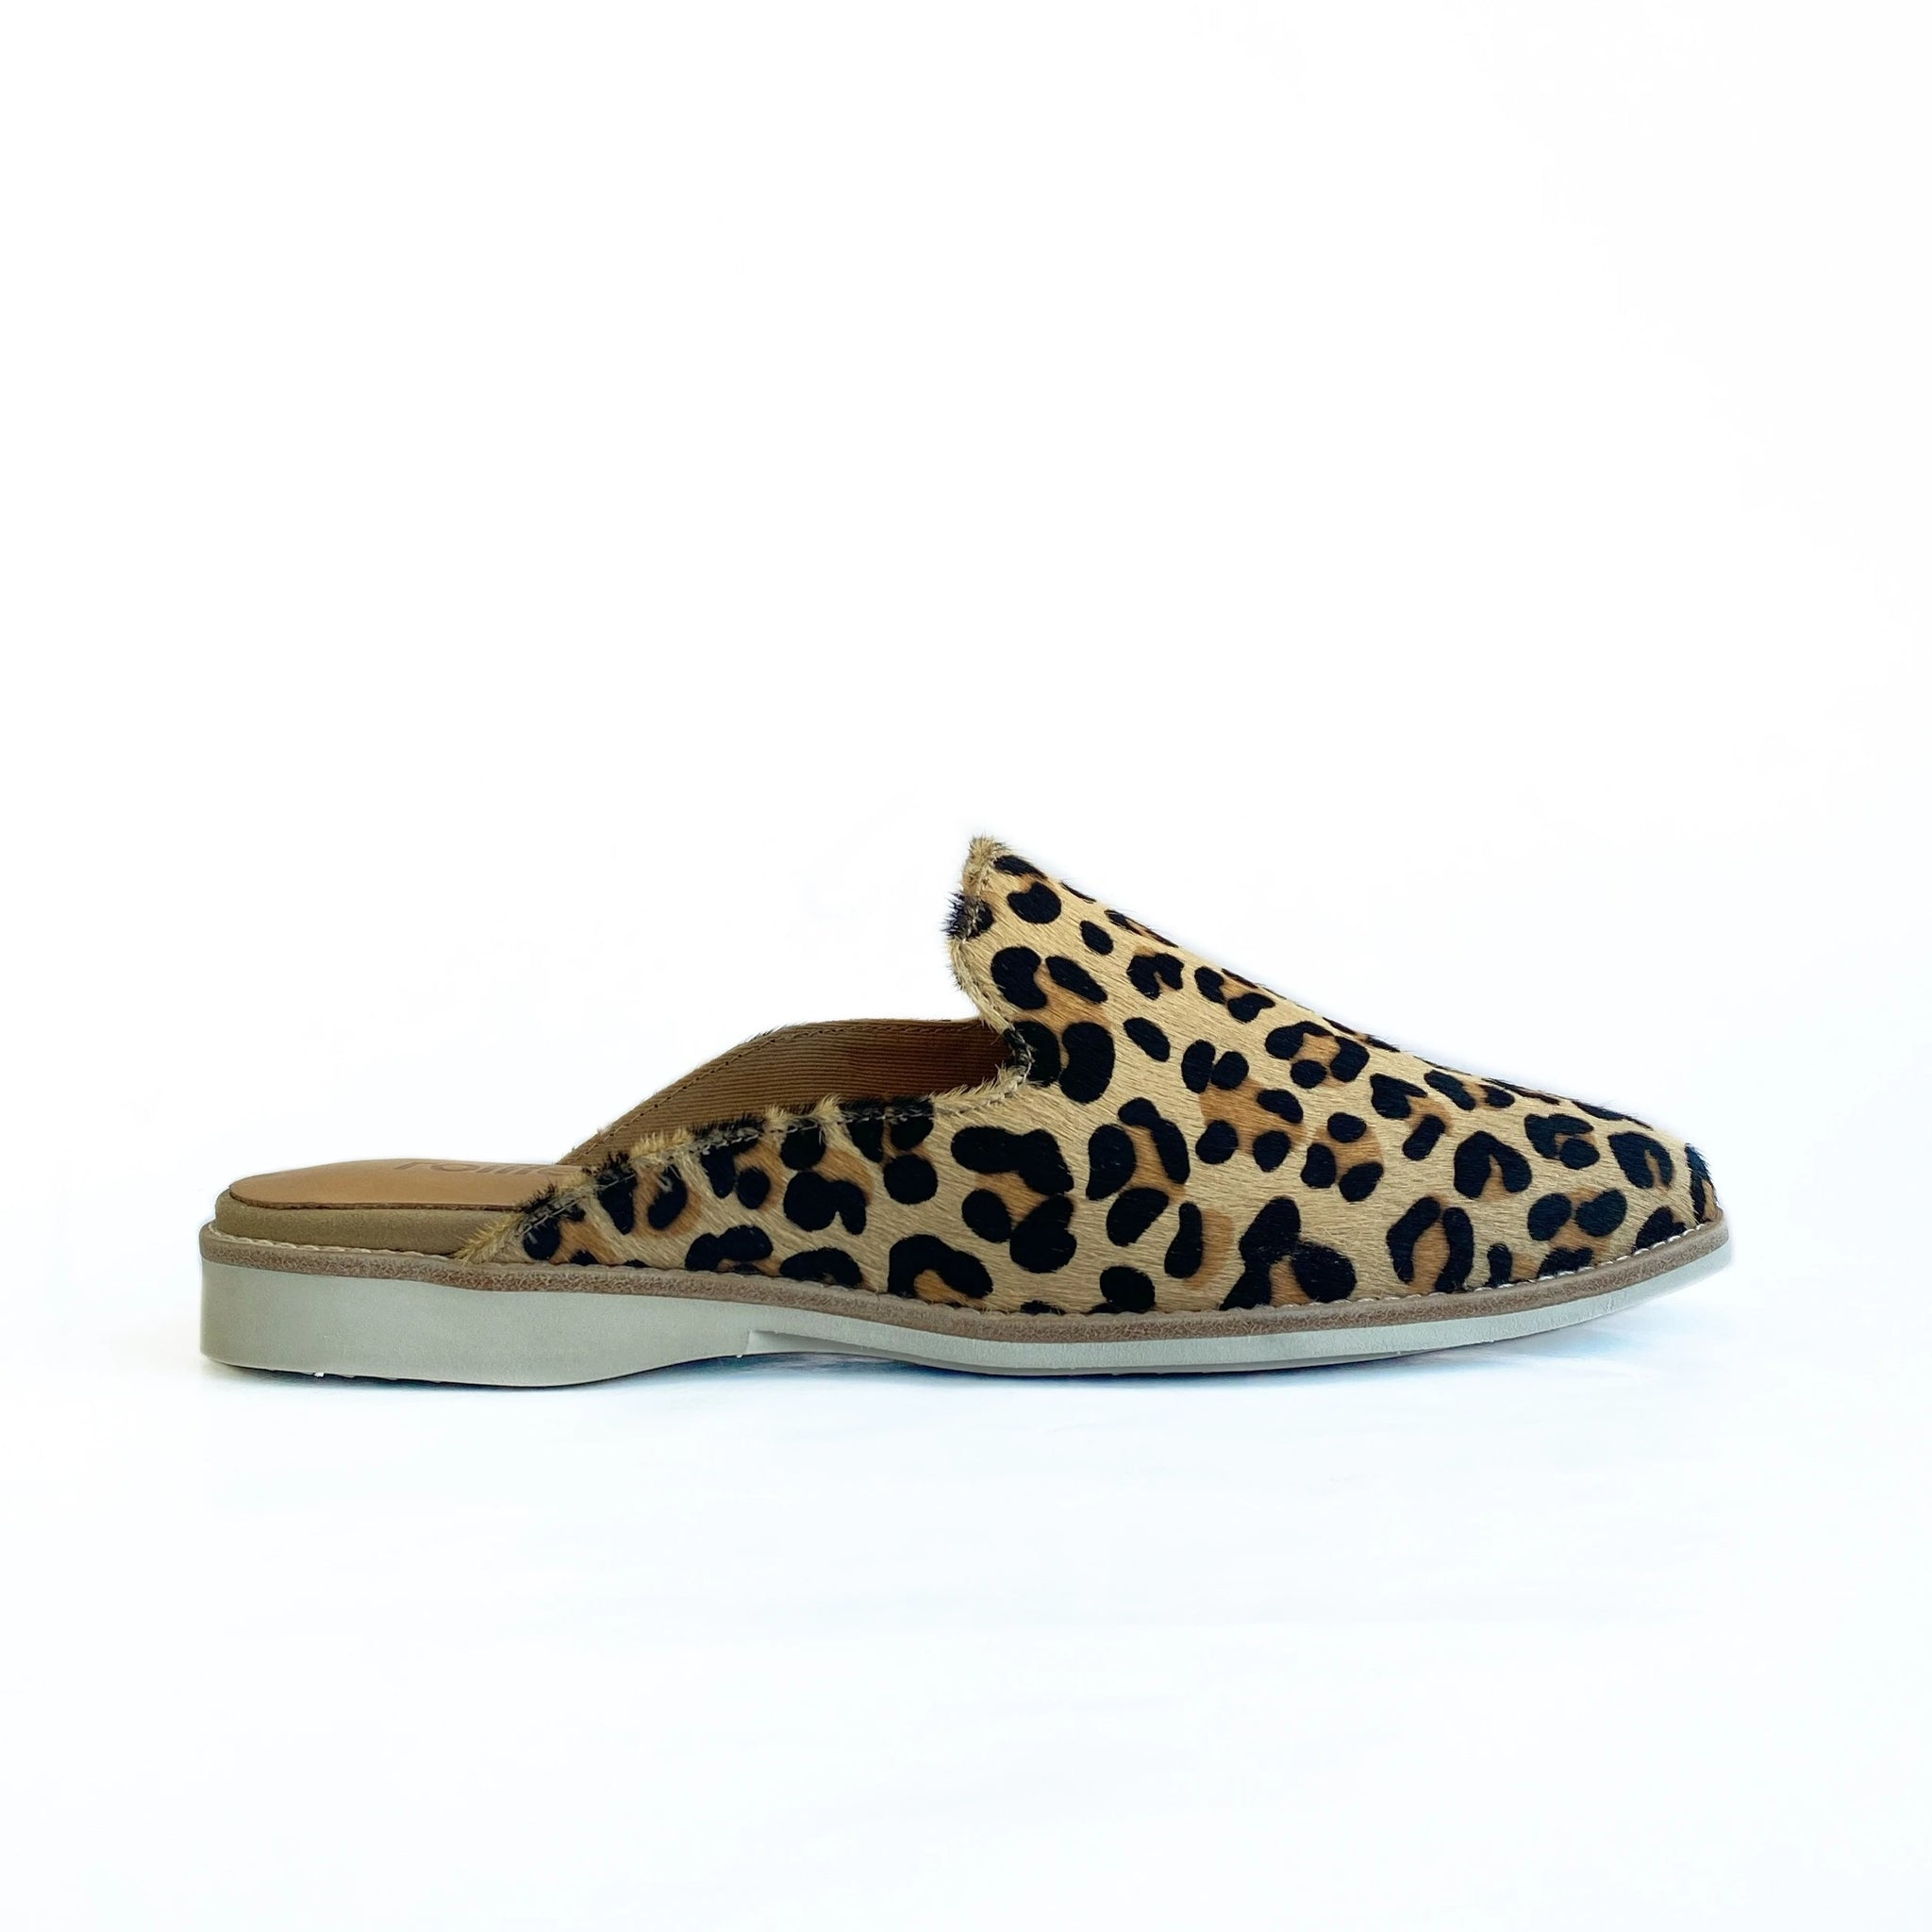 ROLLIE - MADISON MULE IN CAMEL LEOPARD